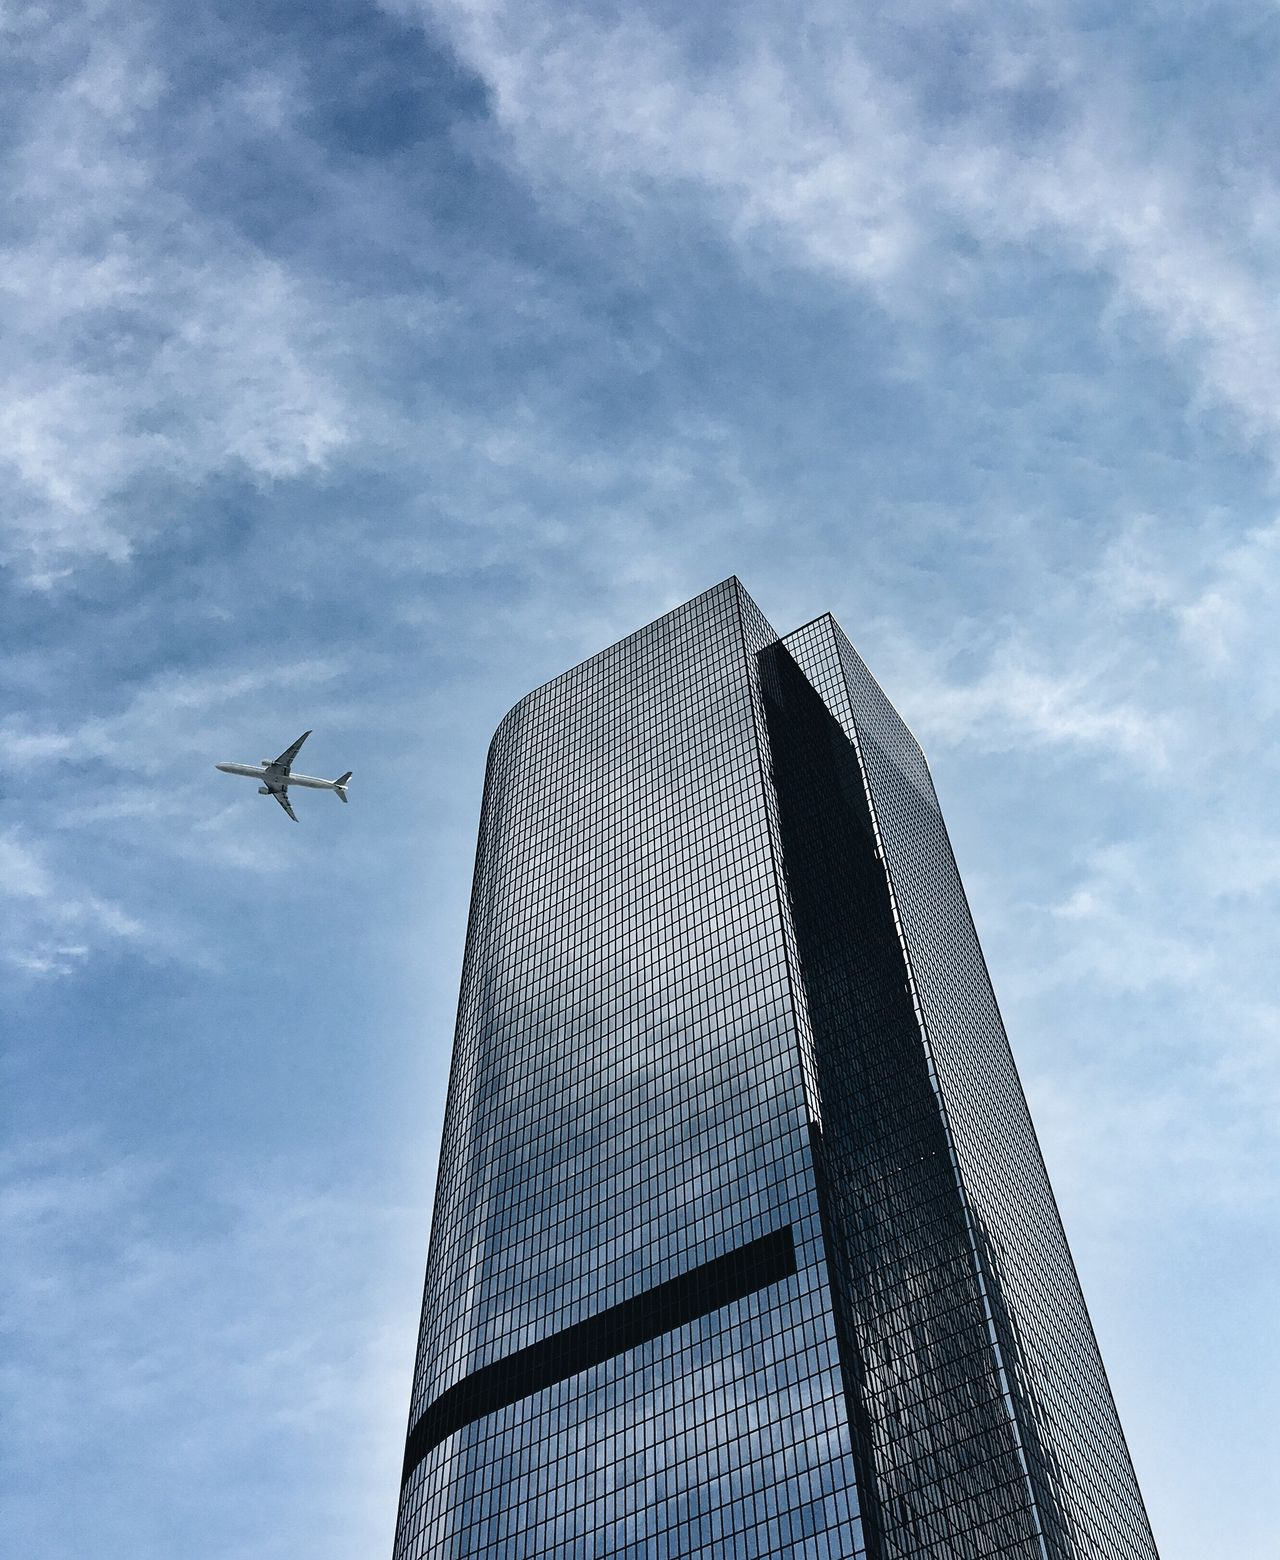 Sky Architecture Low Angle View Flying Built Structure Building Exterior Travel No People Transportation Airplane Cloud - Sky City Modern Outdoors Tall Day Skyscraper